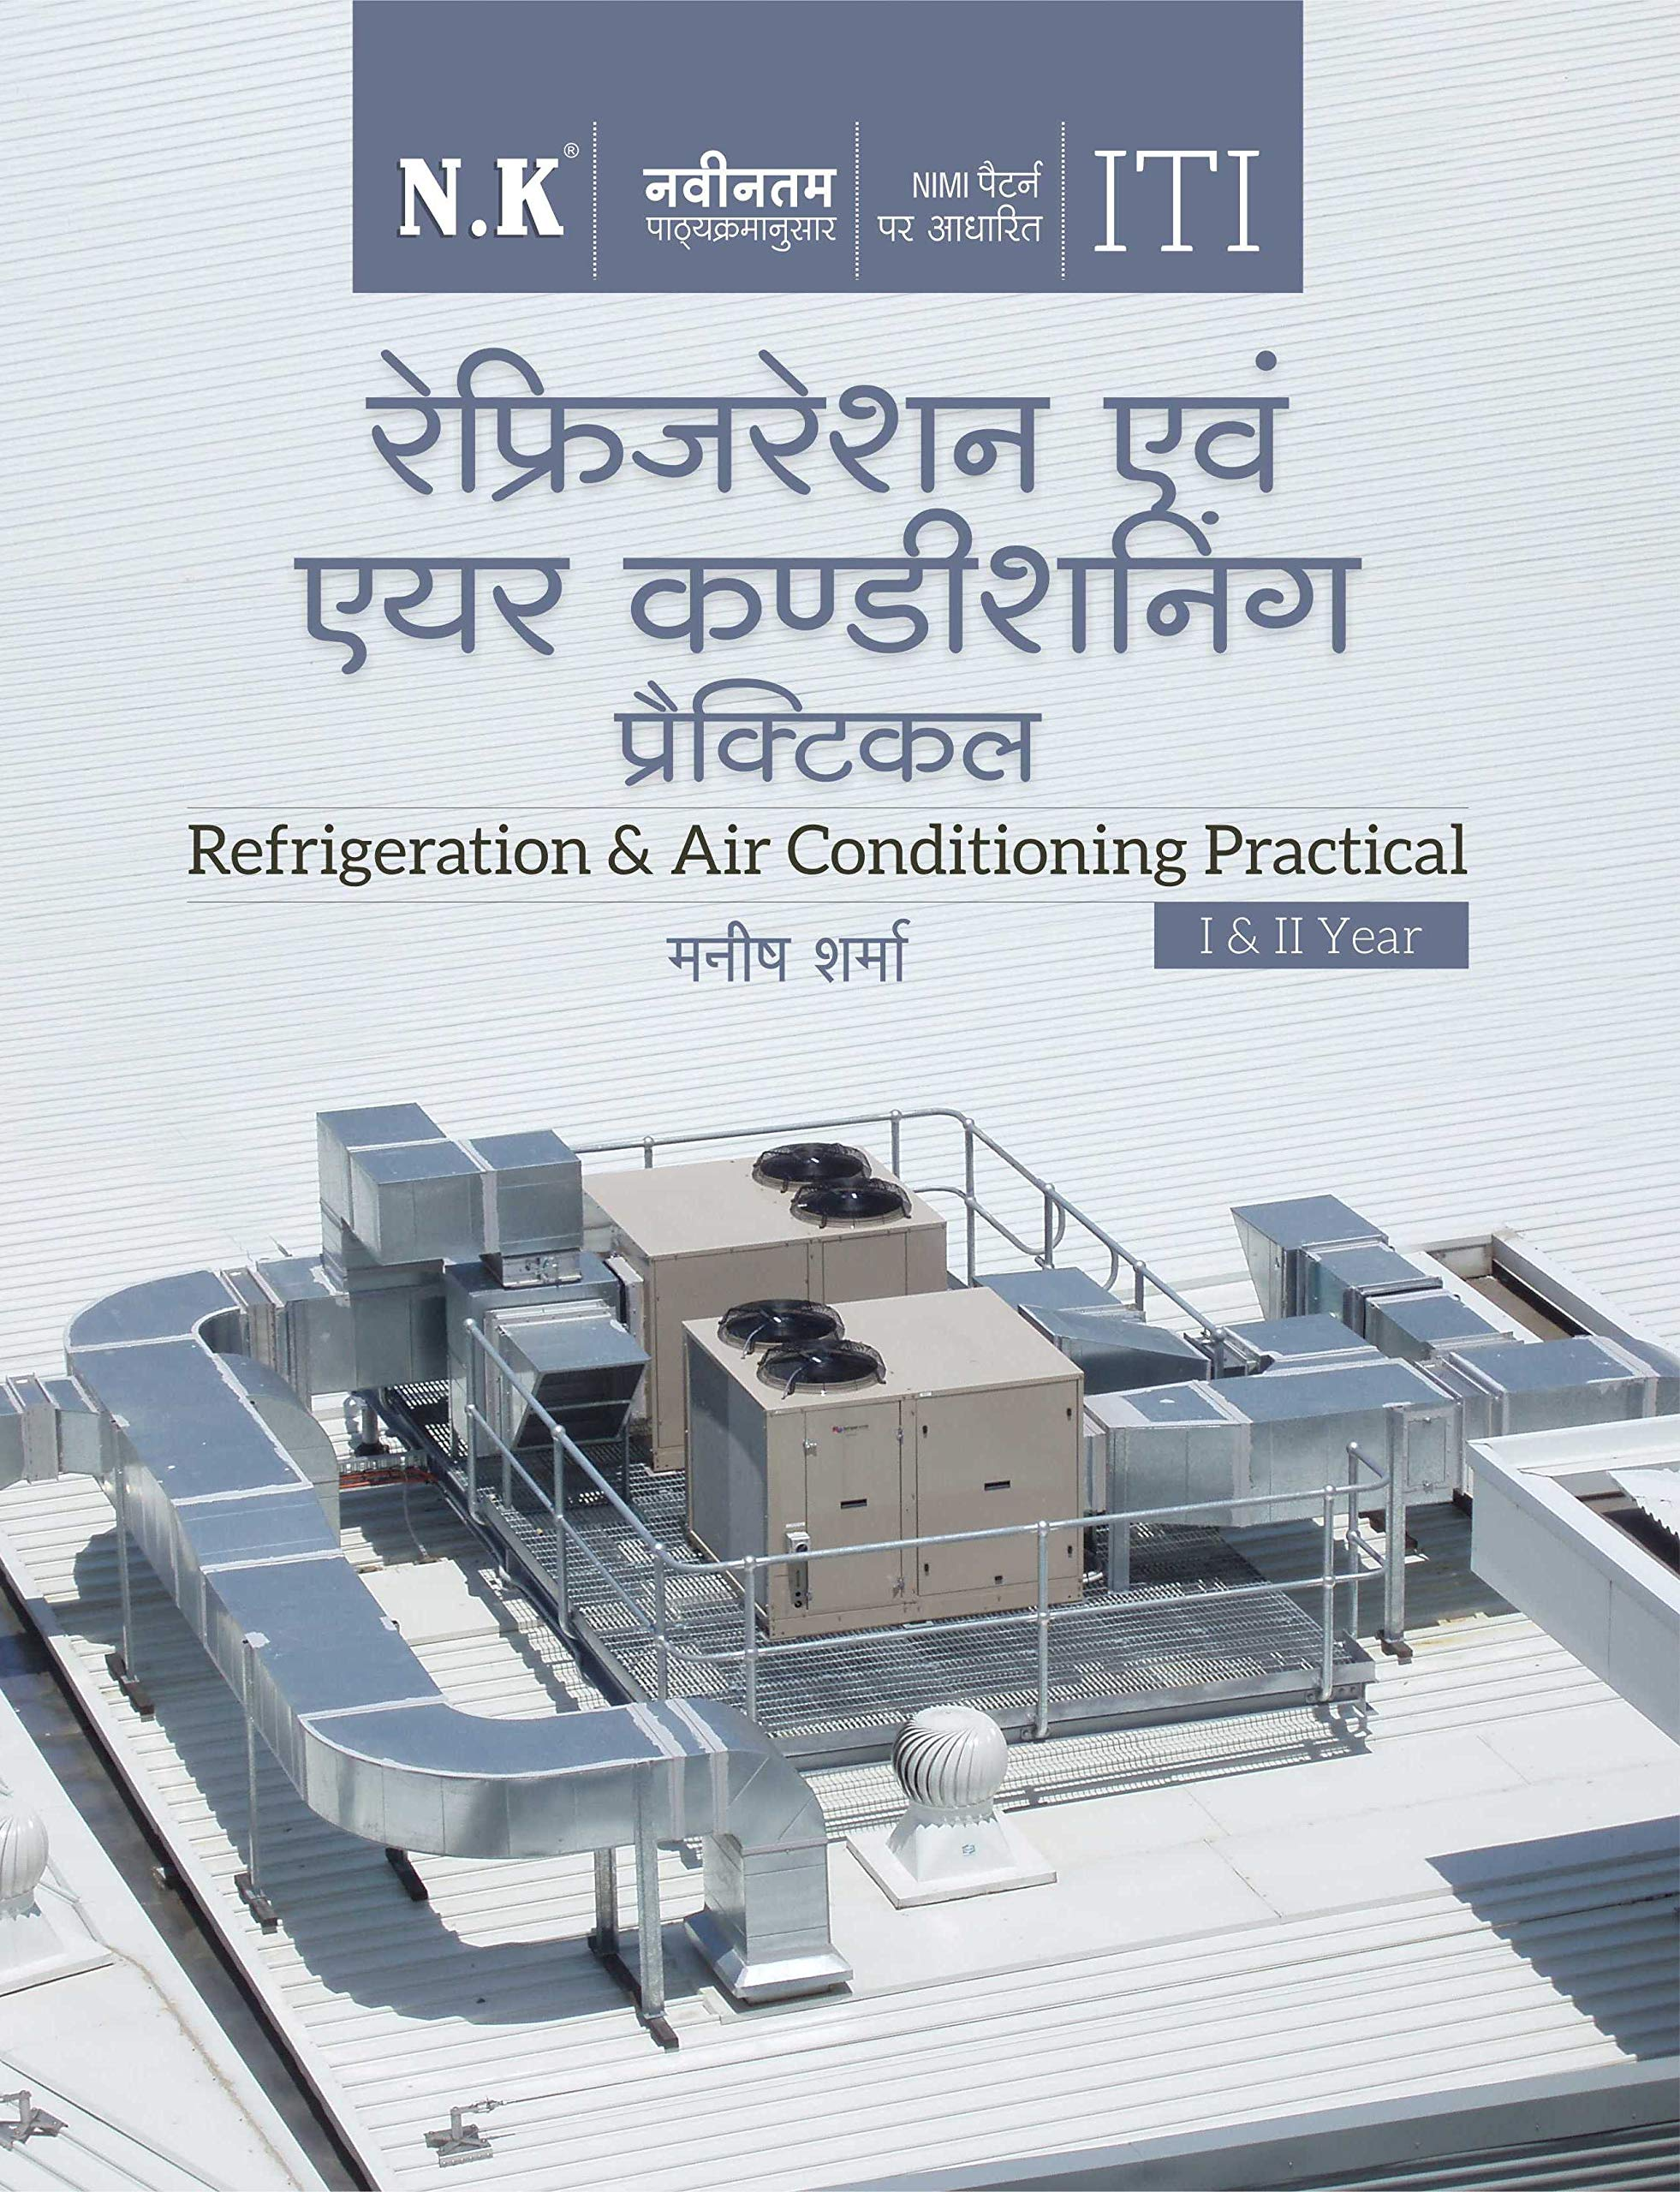 Buy ITI Refrigeration & Air Conditioning Practical (I & II Year) Book  Online at Low Prices in India | ITI Refrigeration & Air Conditioning  Practical (I & II ...